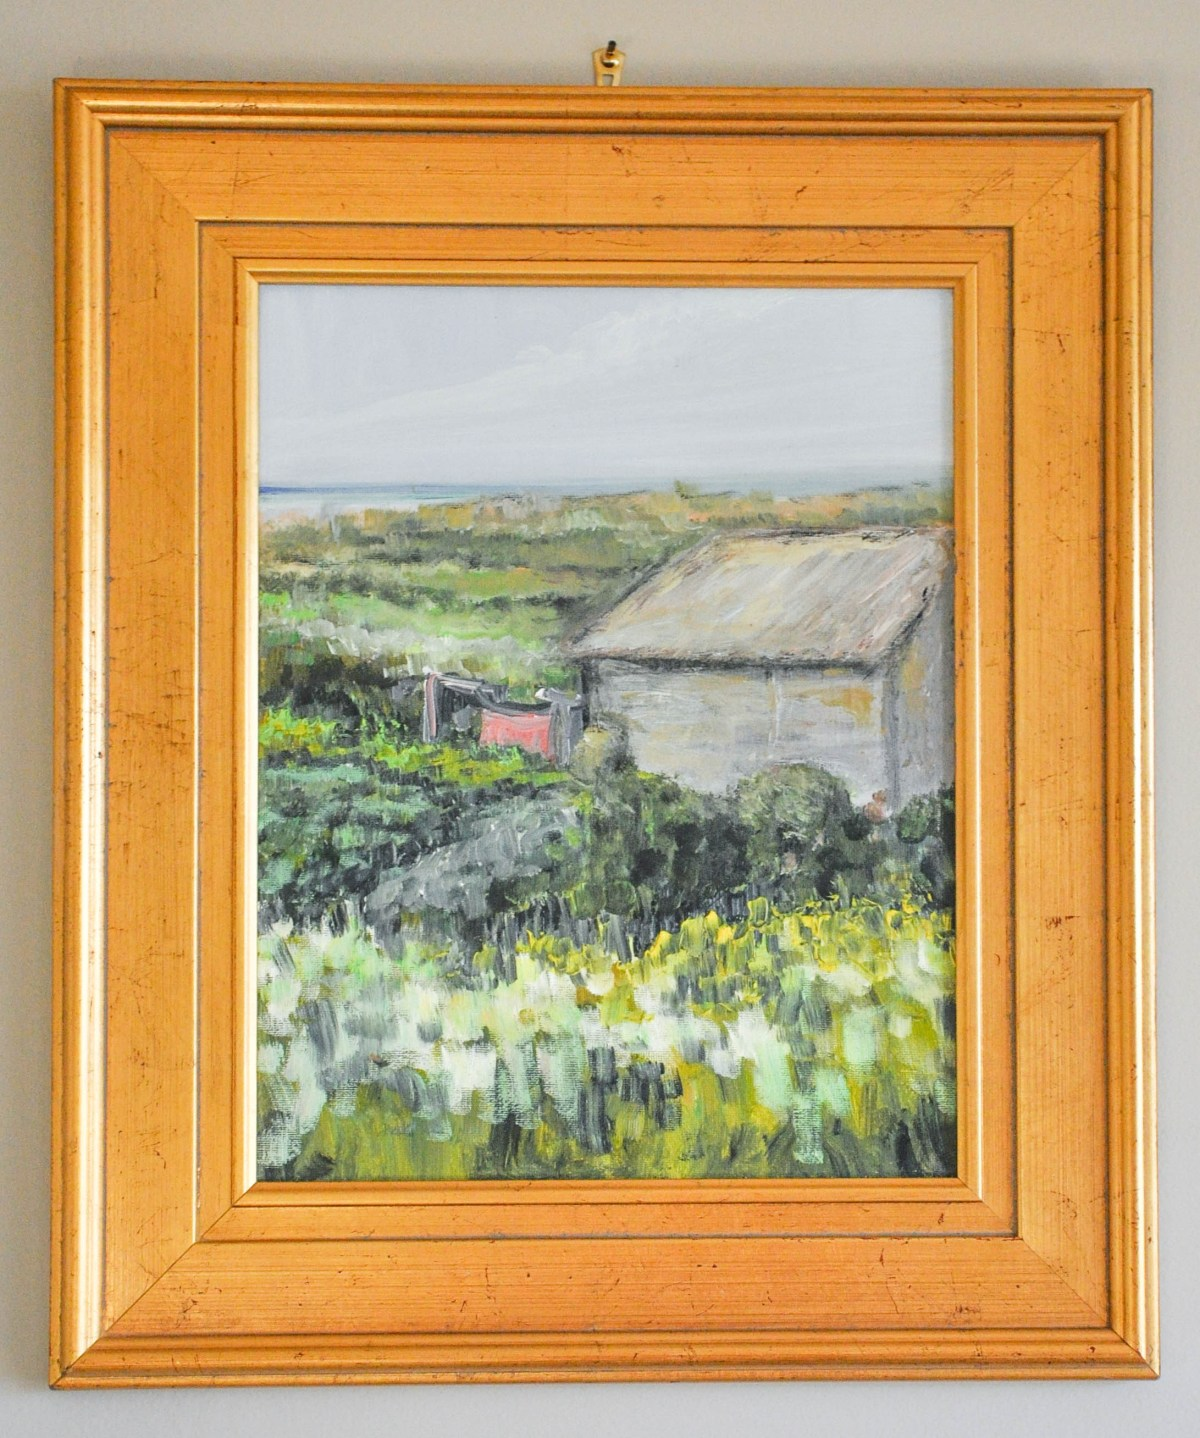 An artwork hanging mistake is highlighted by the nail and hook which are clearly visible above the warm gold frame surrounding a small painting of verdant coastal landscape.